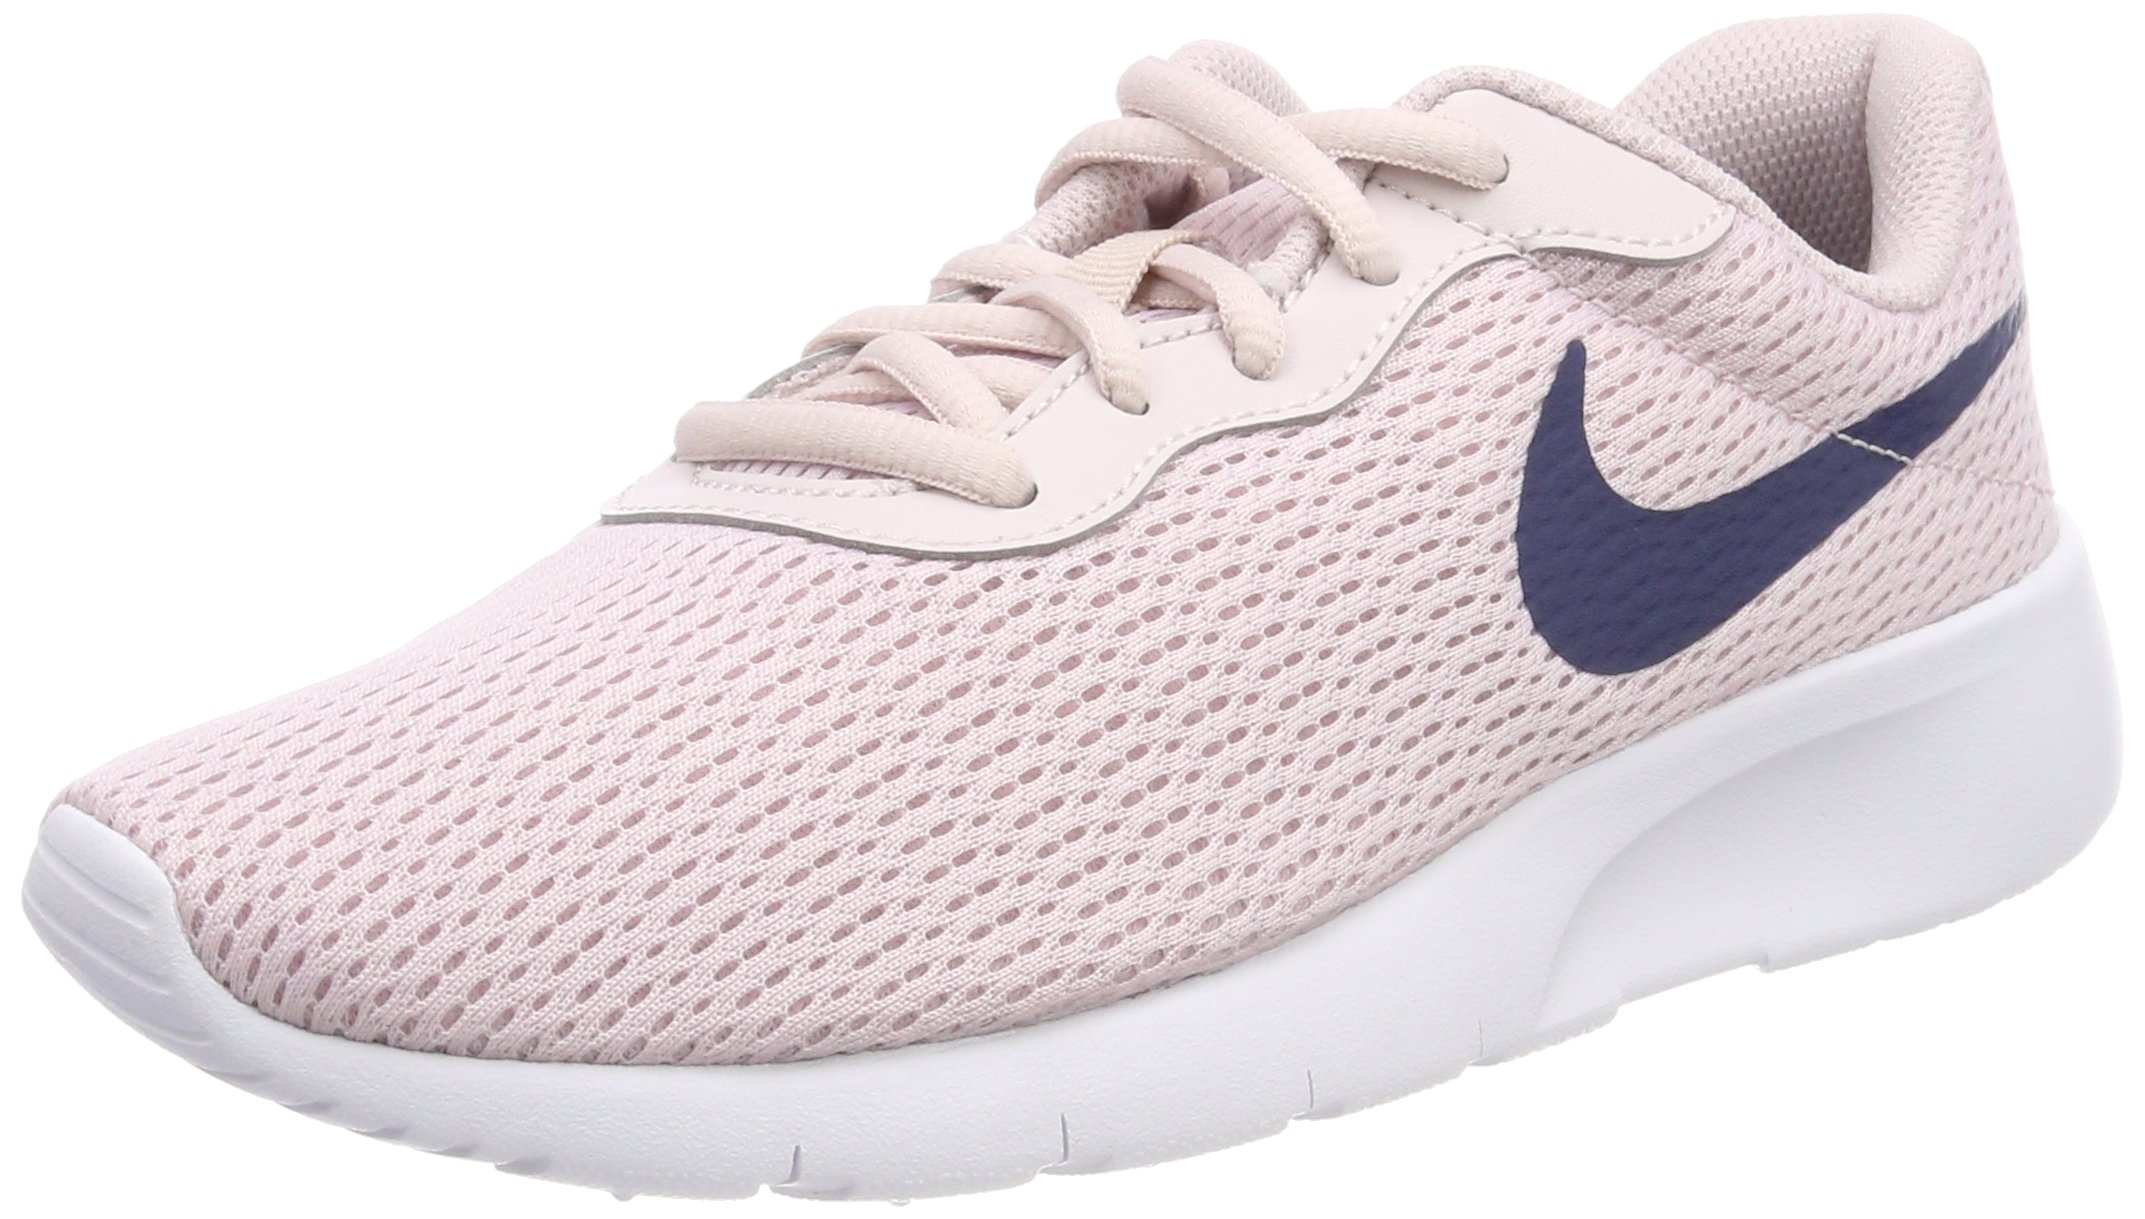 Nike Girl's Tanjun Shoe Barely Rose/Navy/White Size 3.5 M US